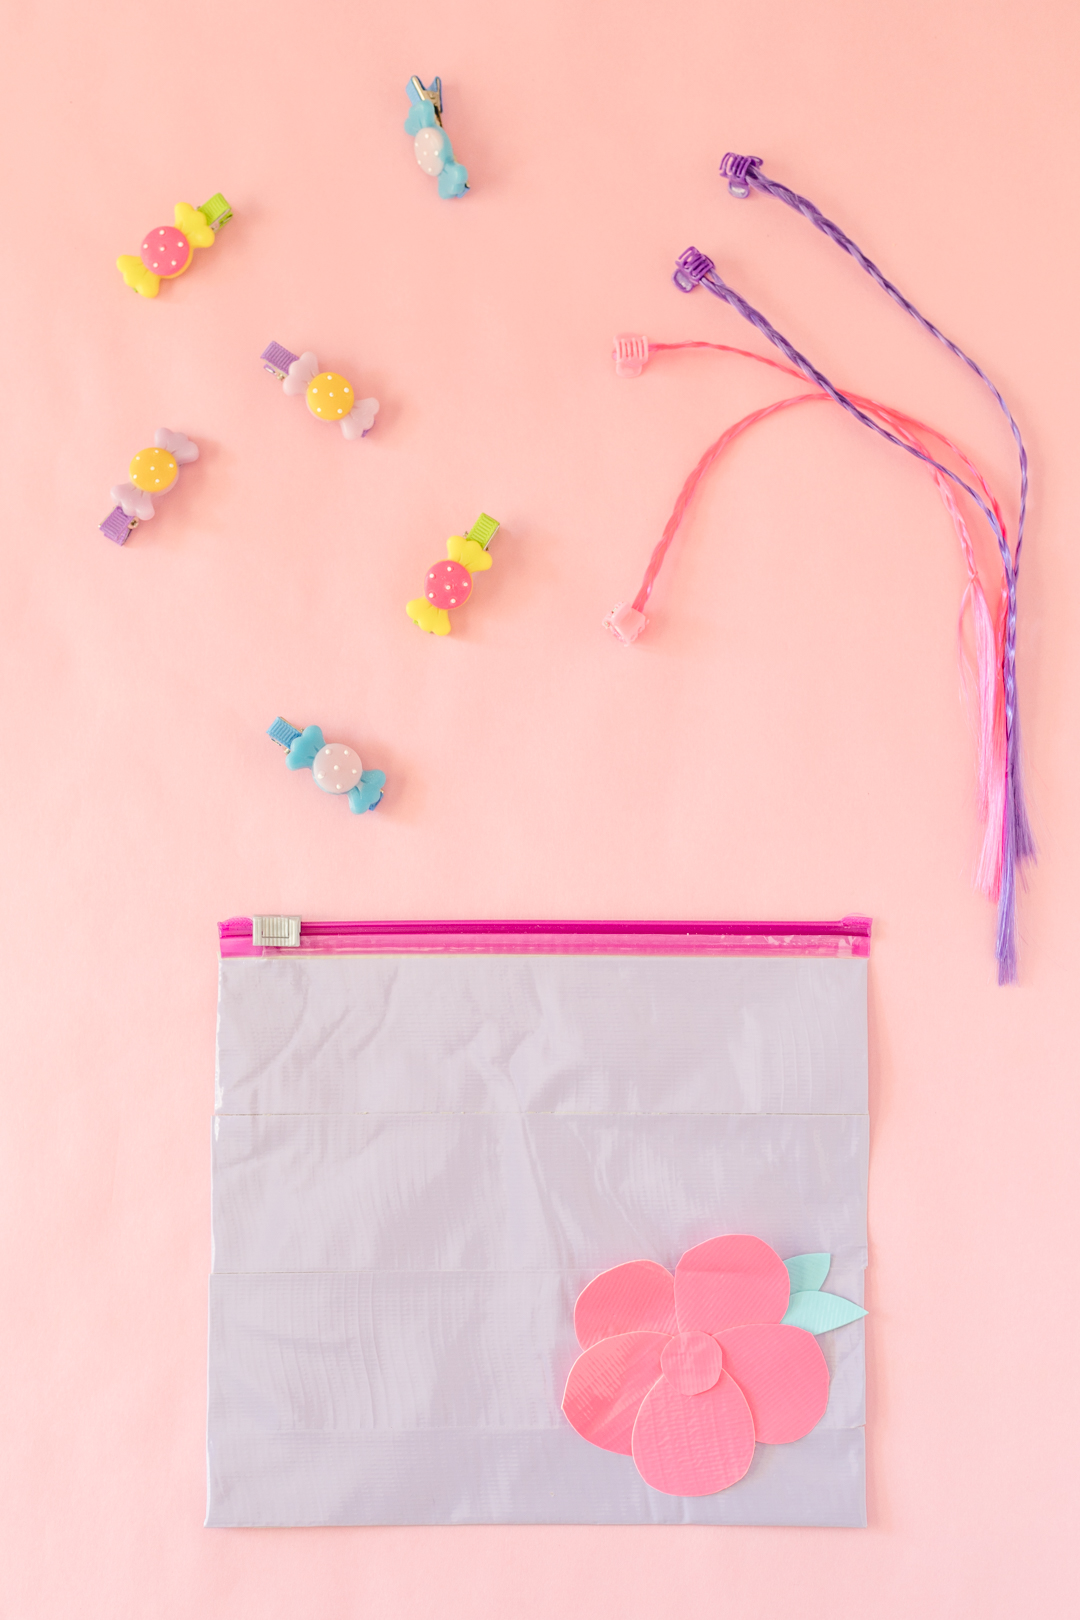 DIY Makeup Pouch / DIY Hair Accessory Bag.